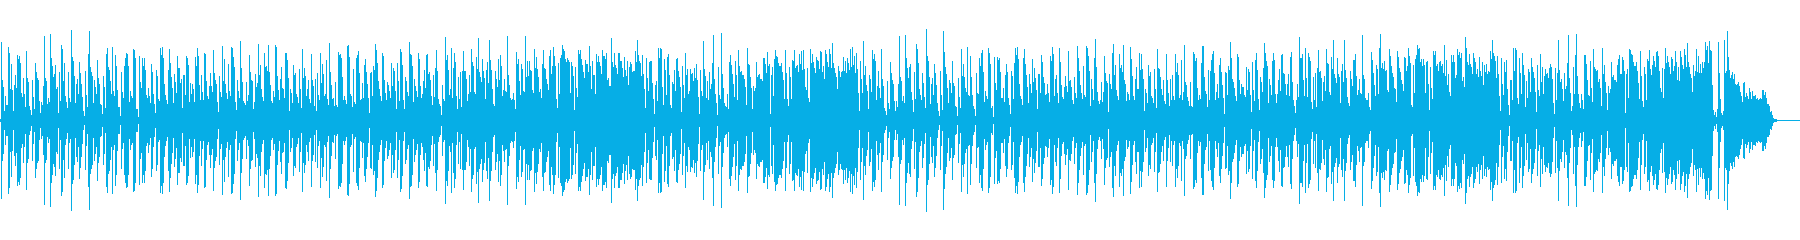 Live music! Classic jazz blues 02's reproduced waveform